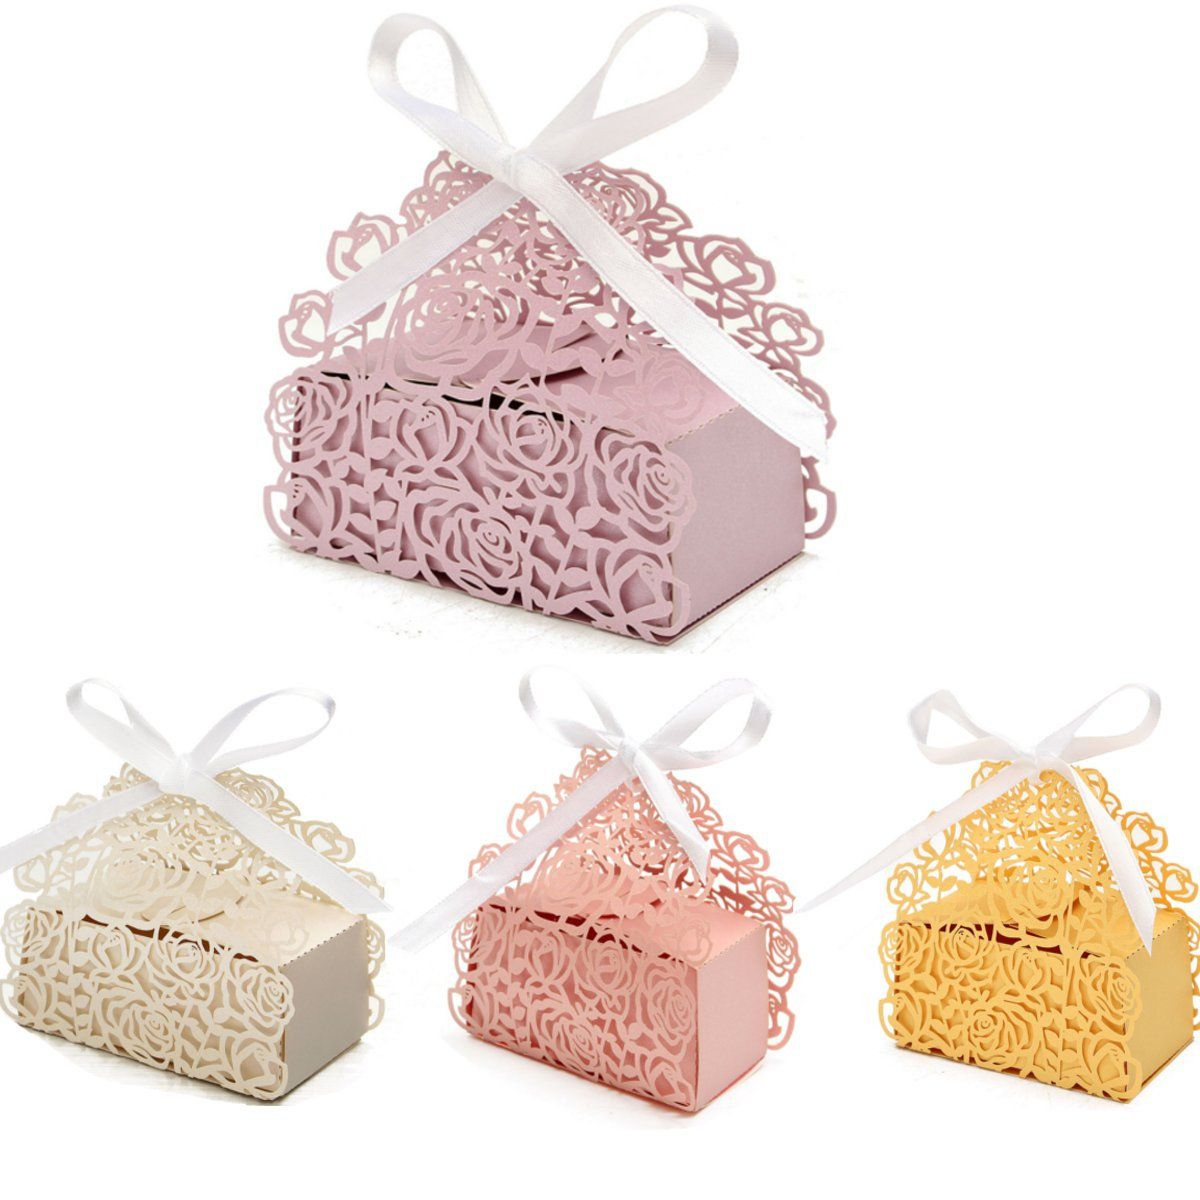 12 Pcs Lace Ribbon Rose Hollow Out Paper Candy Boxes Wedding Favors ...